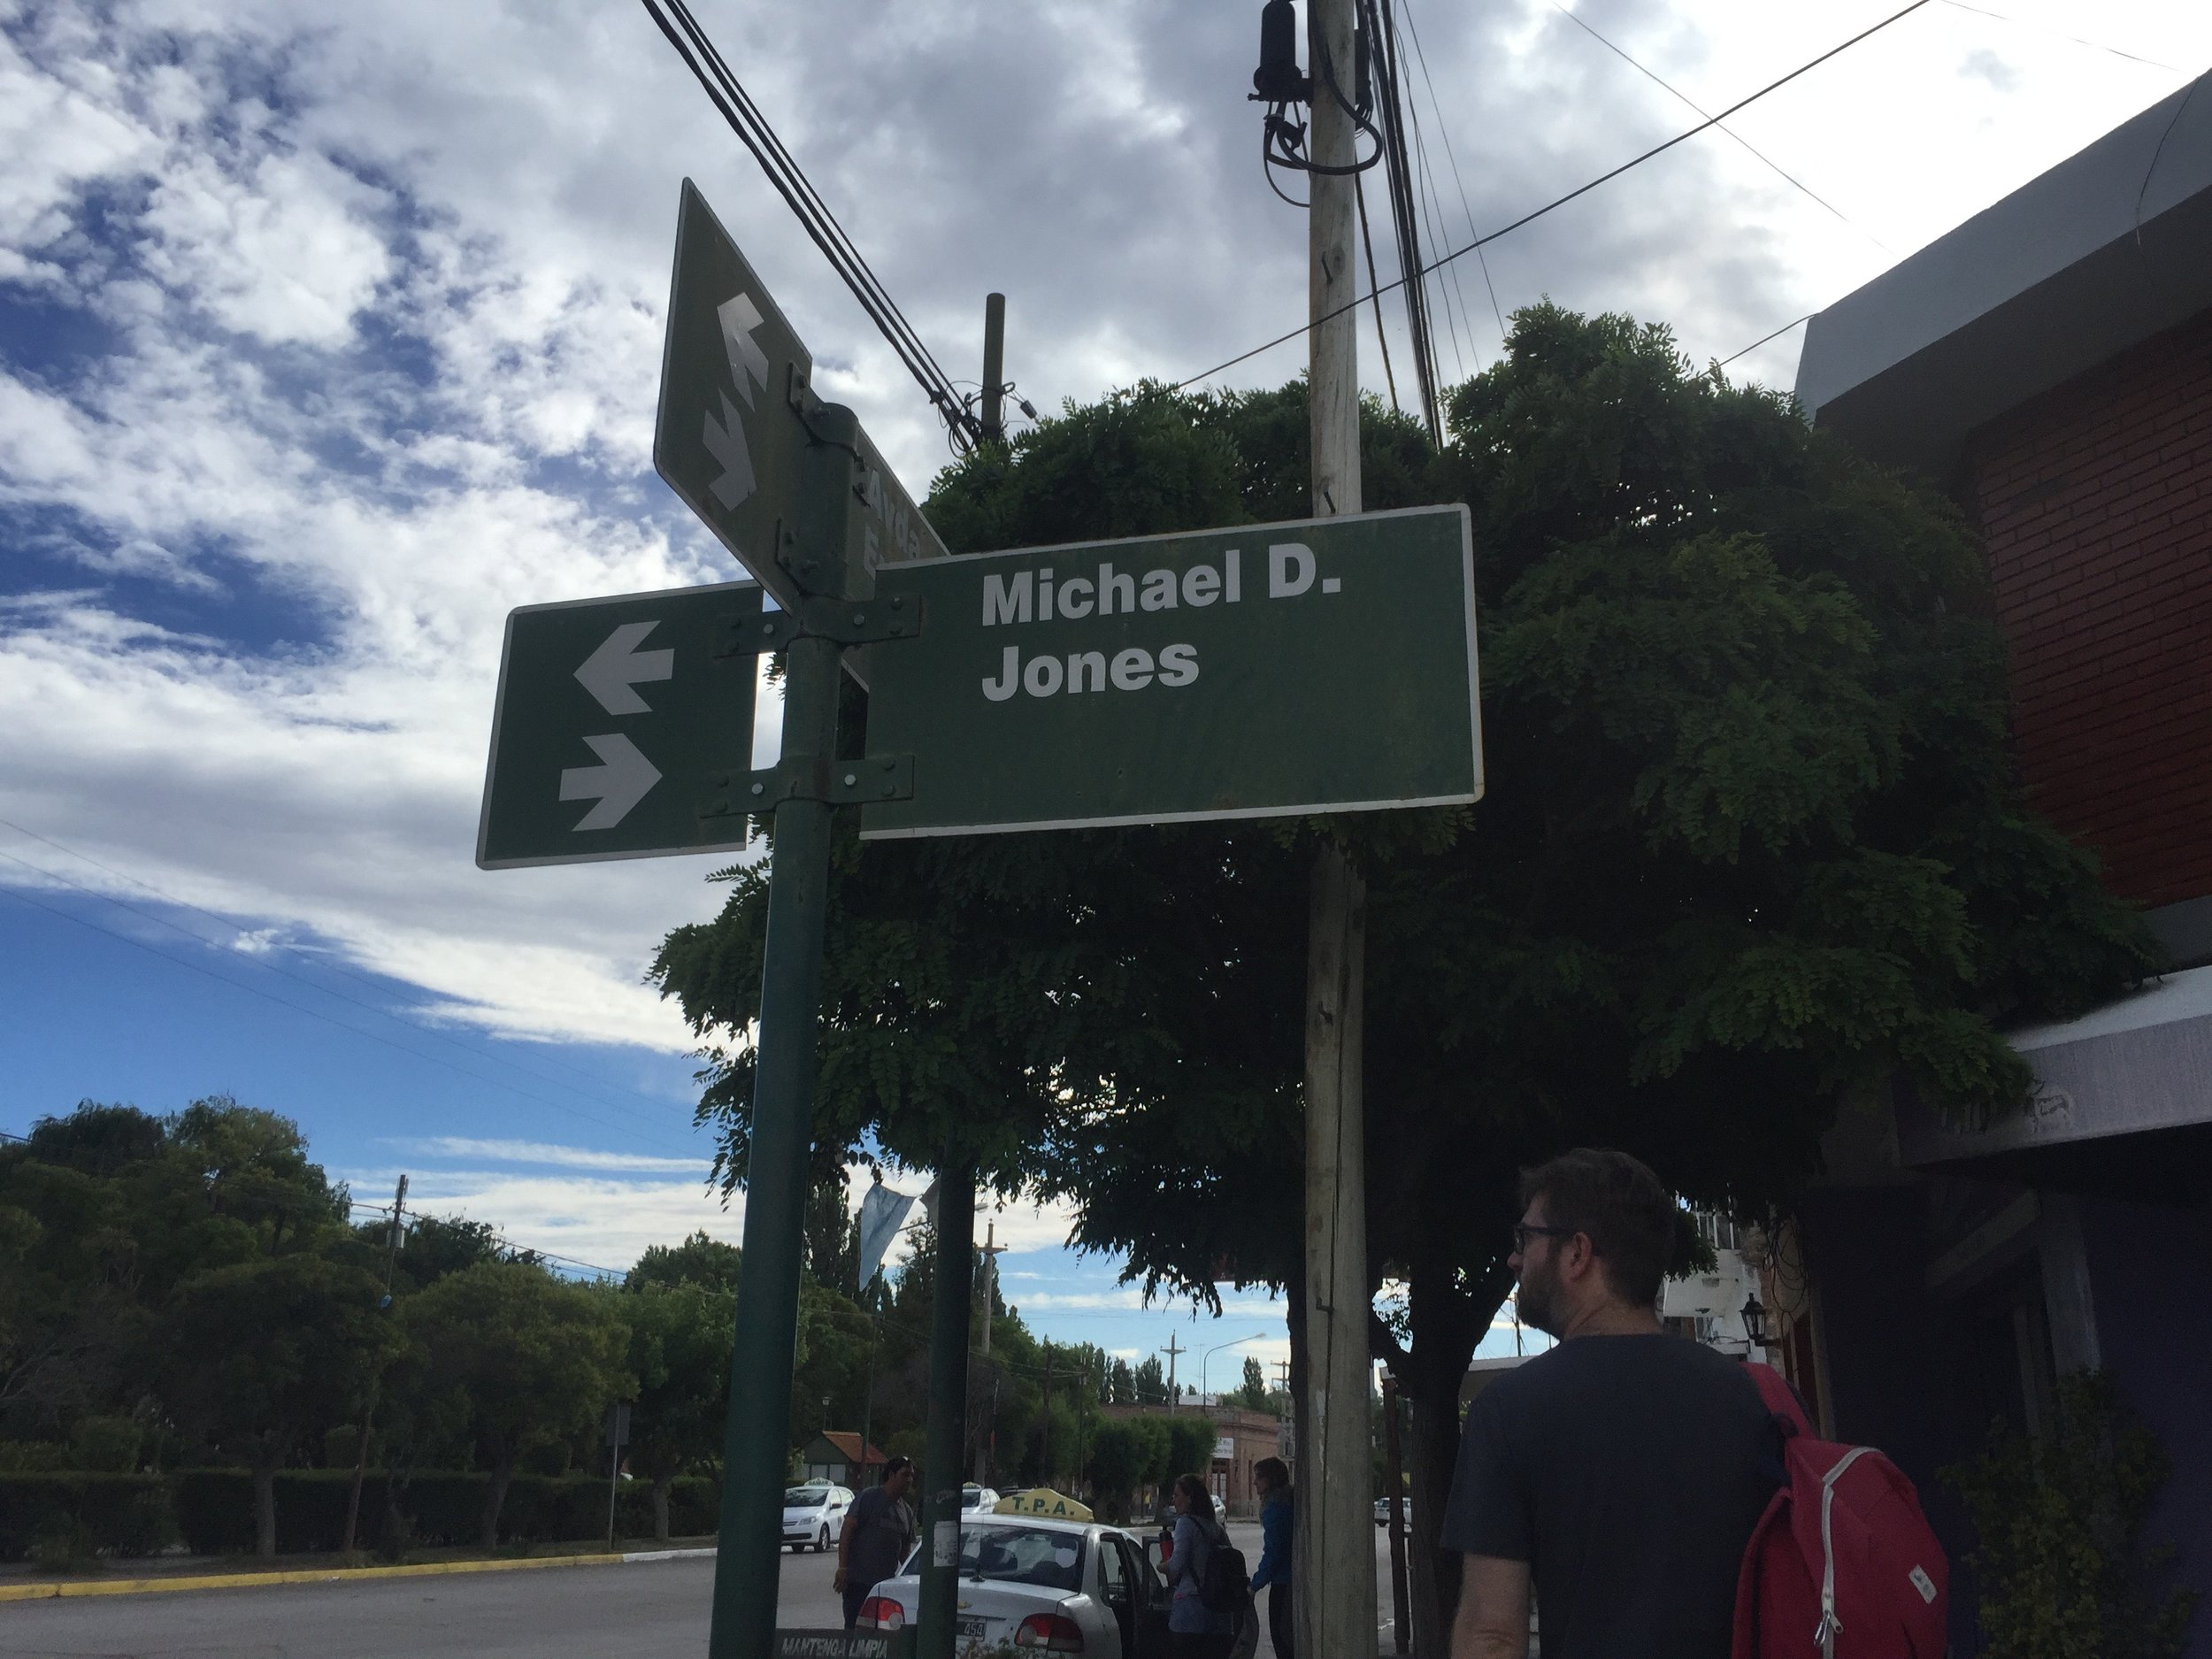 Michael D. Jones street in Gaiman